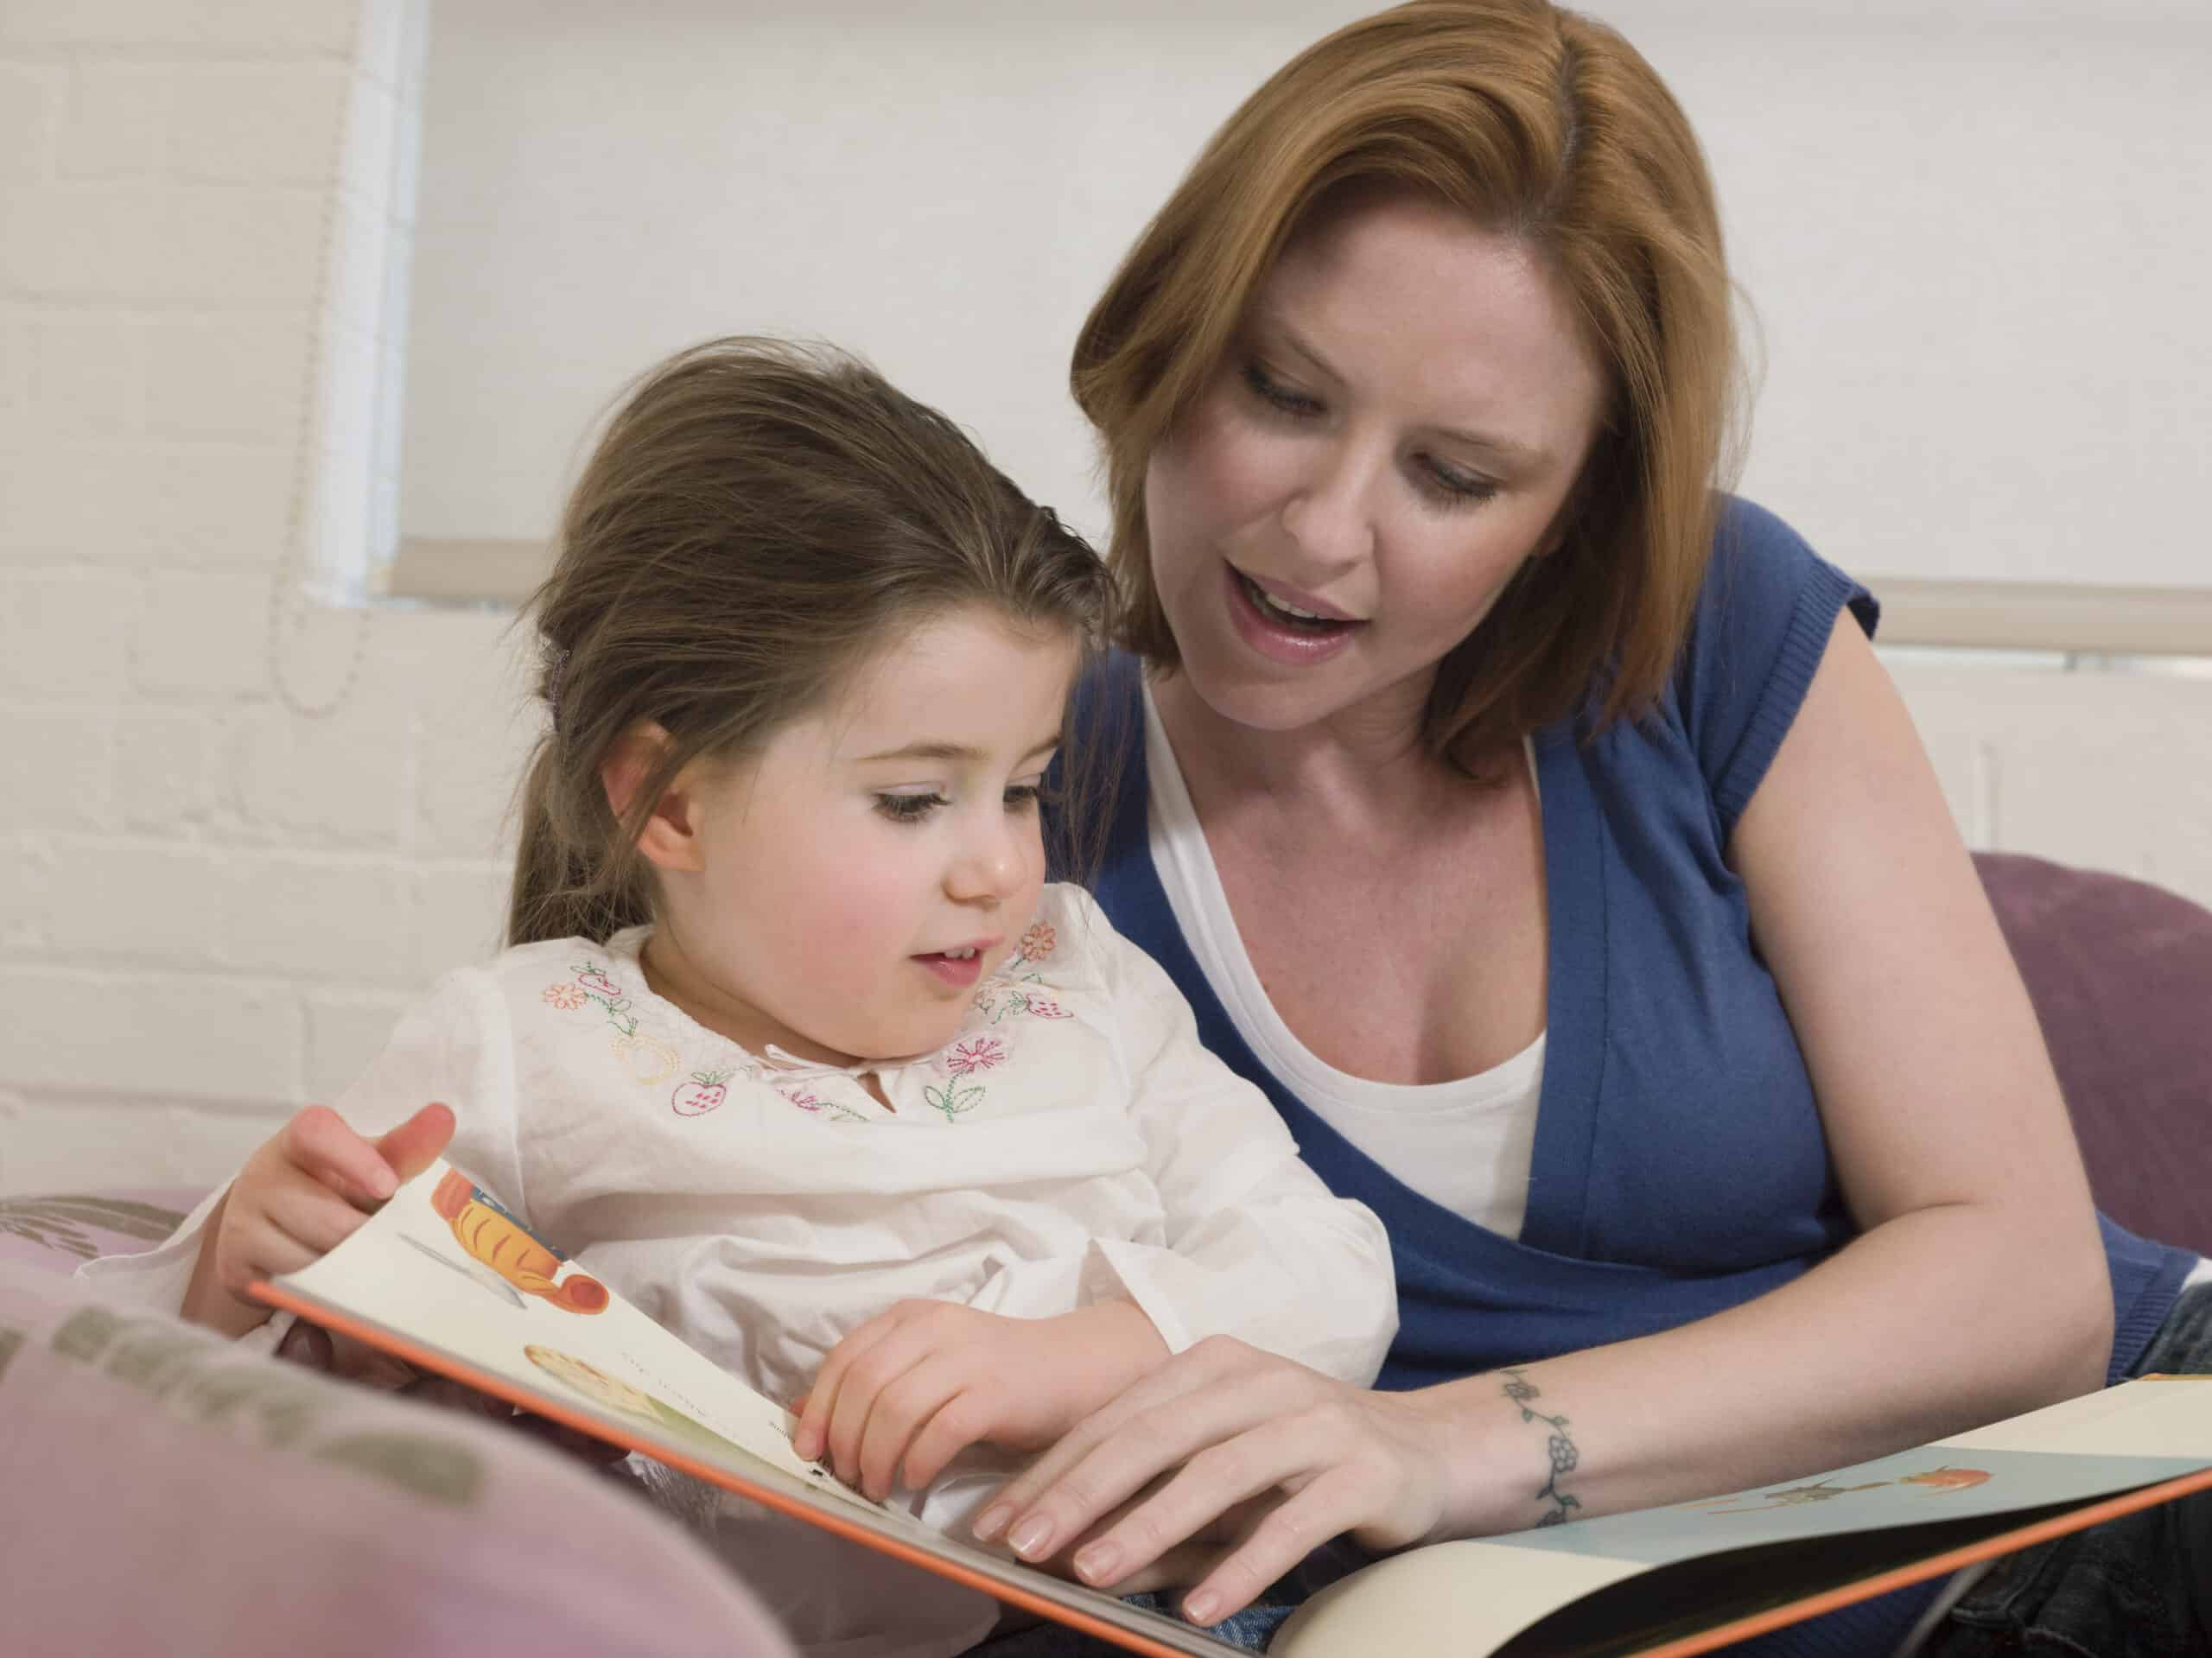 how to teach a 3 year old to read?